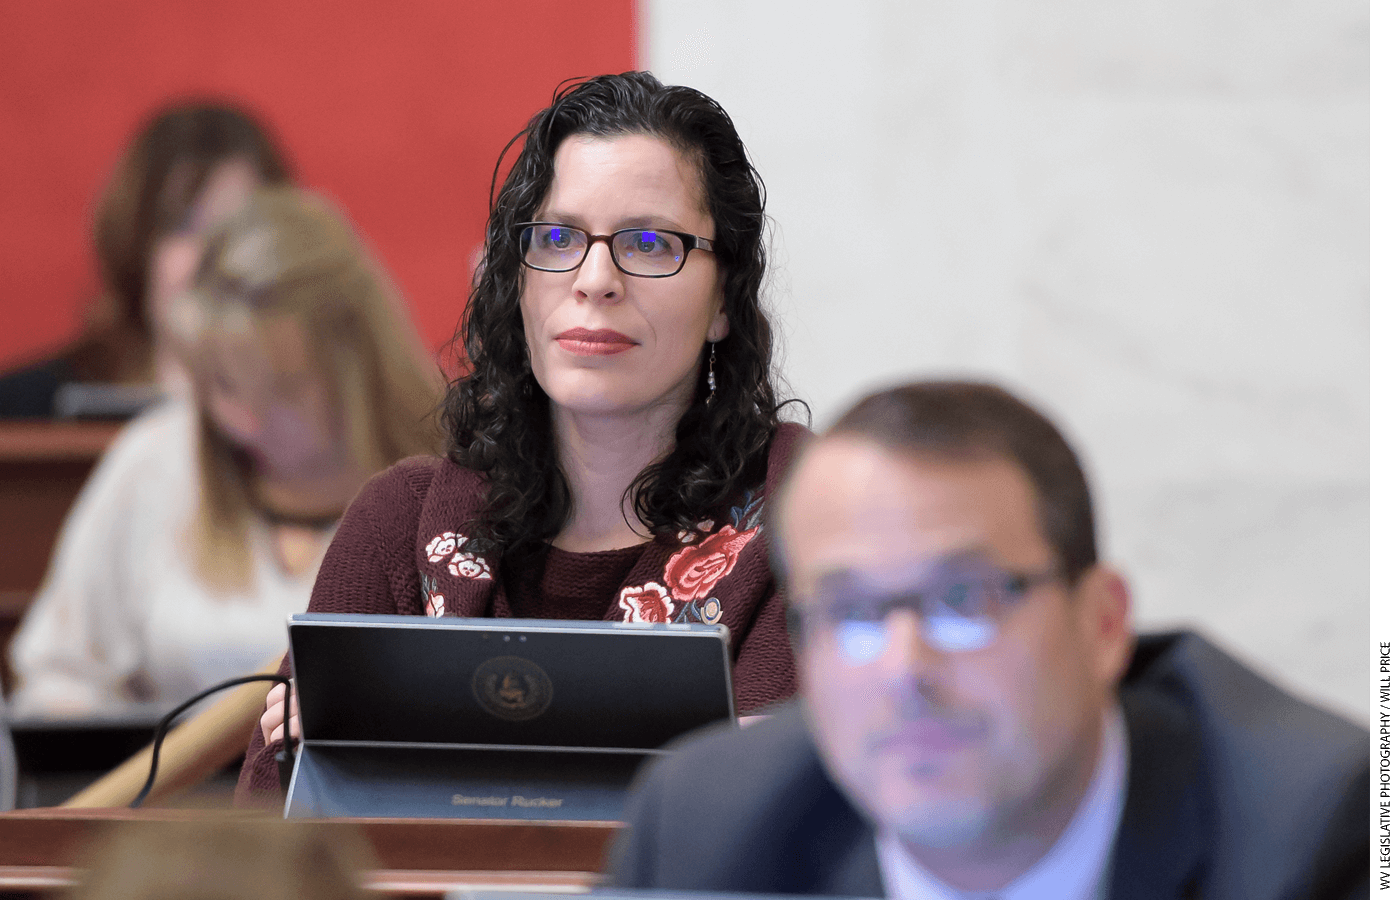 Patricia Rucker, chair of the West Virginia Senate's education committee, says education savings accounts could bring the concept of school choice to rural areas.